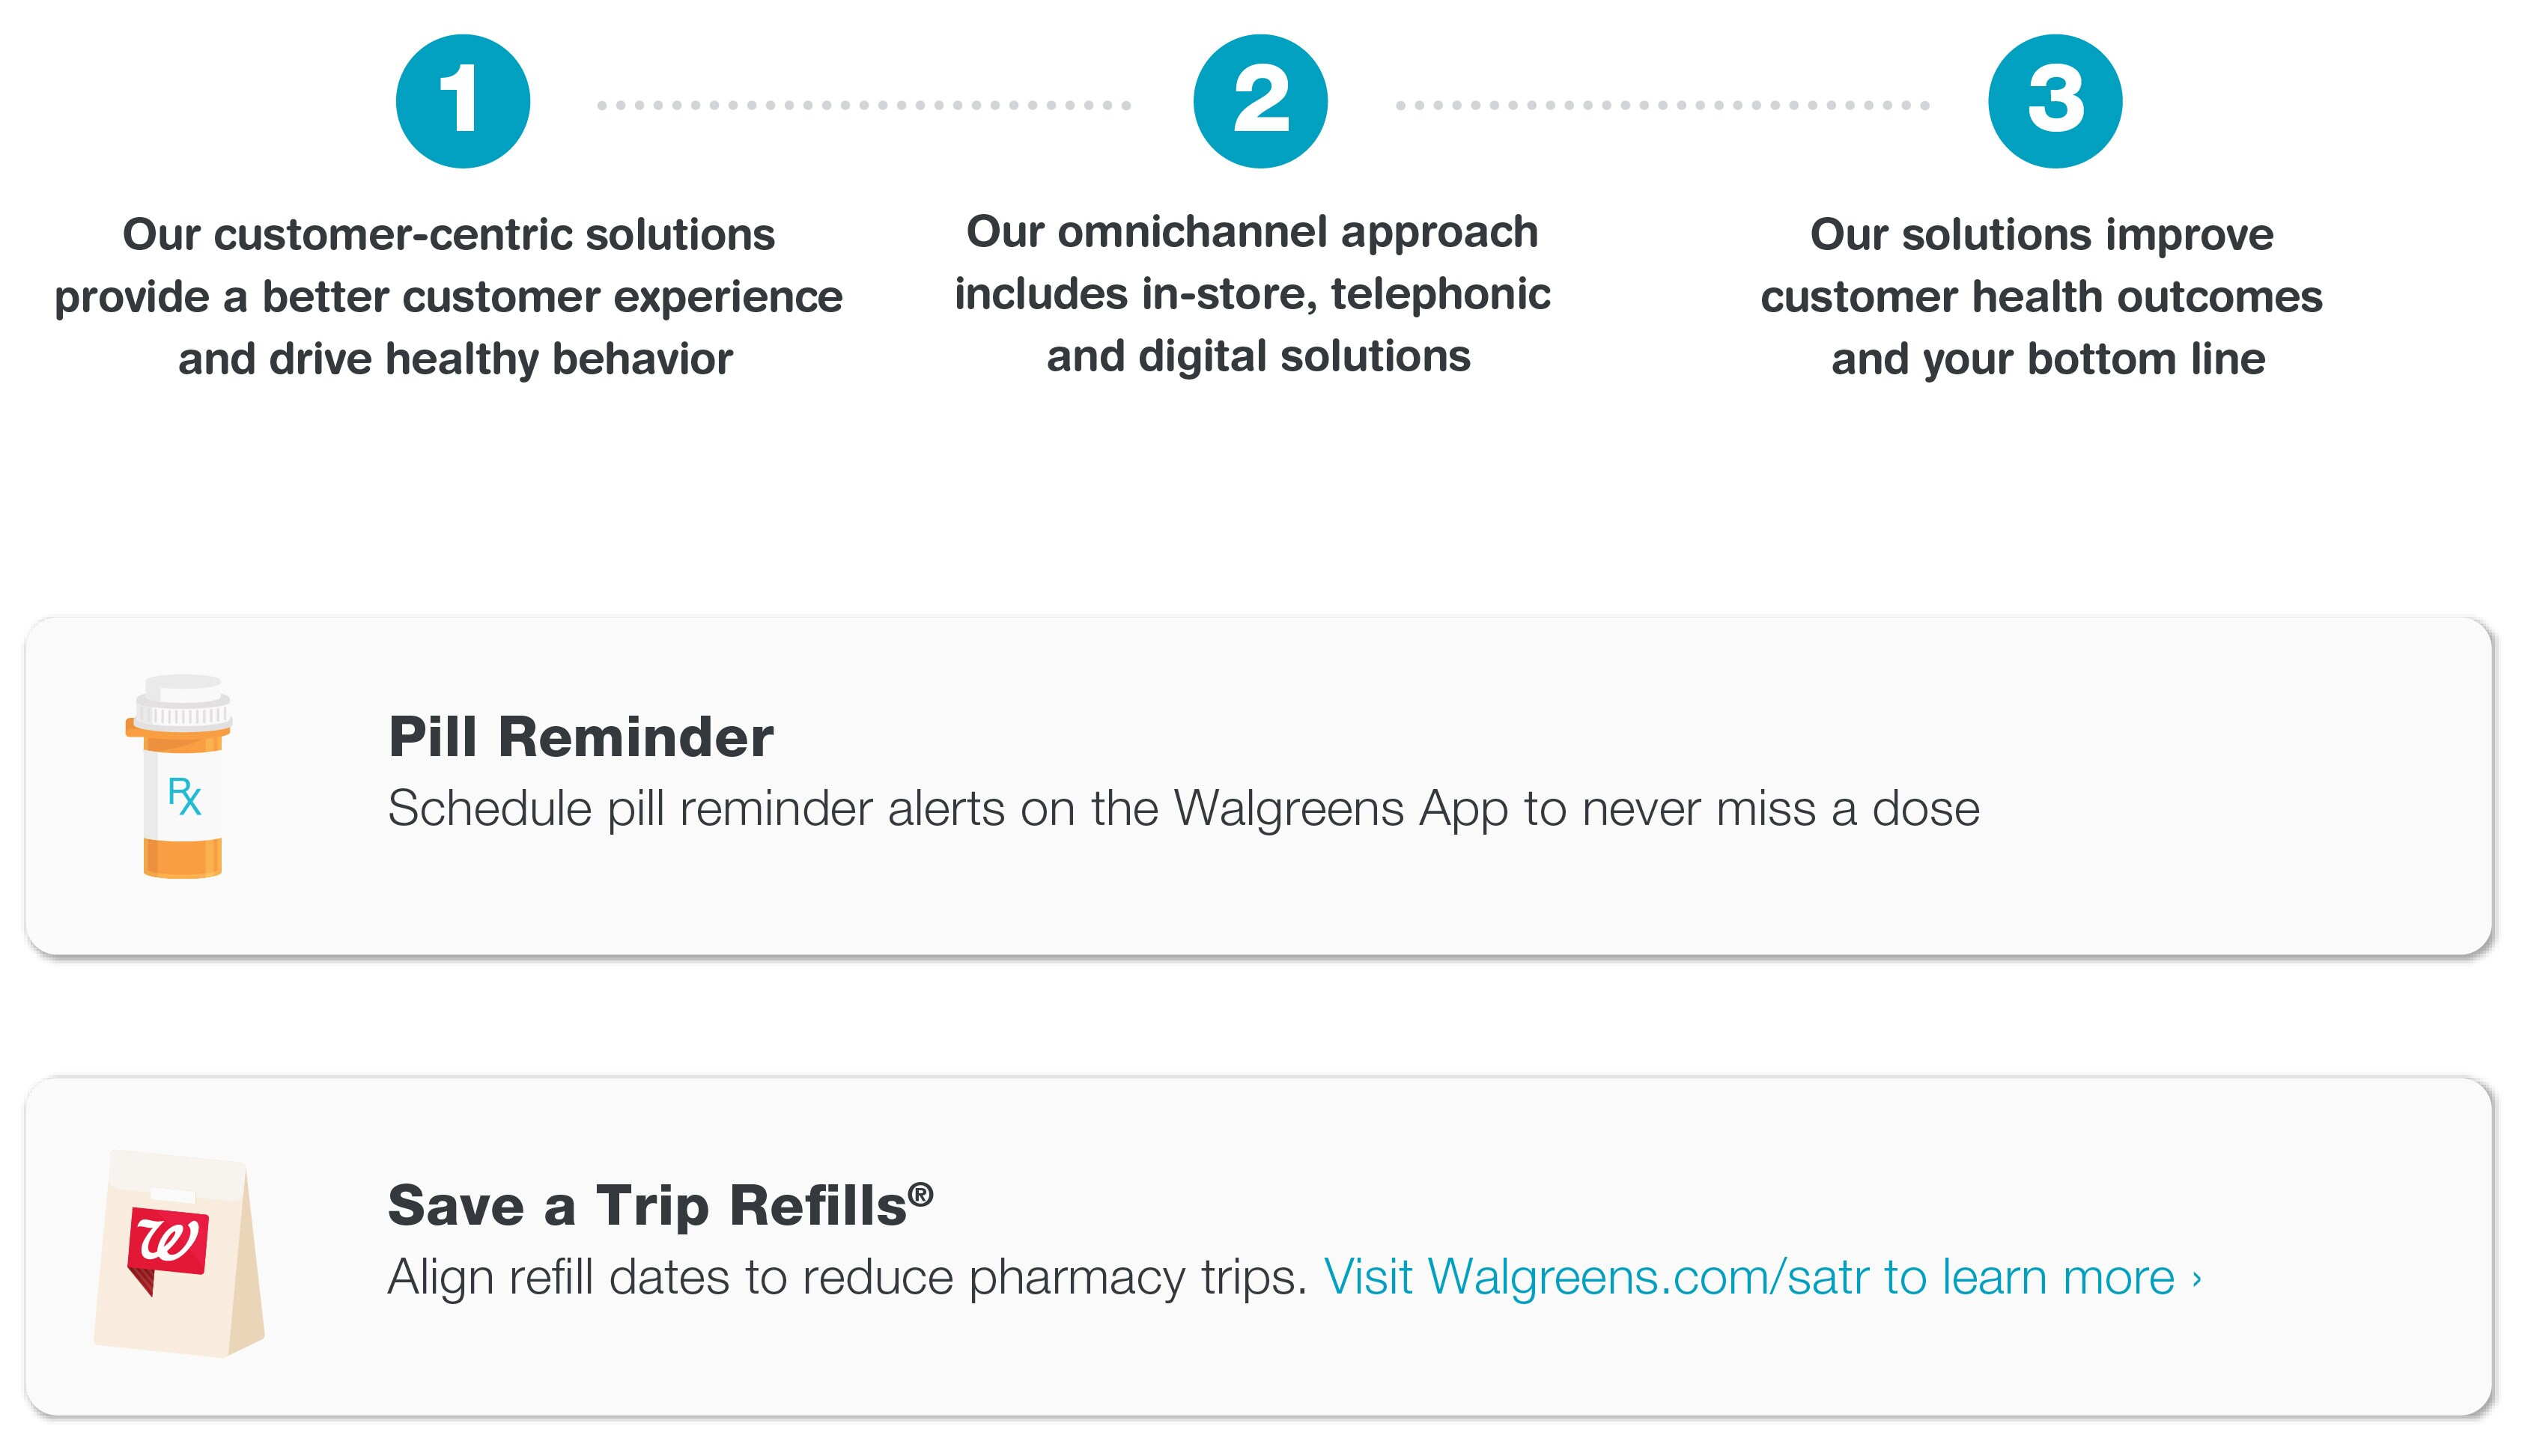 1. Our customer-centric solutions provide a better customer experience and drive healthy behavior. 2. Our omnichannel approach includes in-store, telephonic and digital solutions. 3. Our solutions improve customer health outcomes and your bottom line. Pill Reminder. Schedule pill reminder alerts on the Walgreens App to never miss a dose. Save a Trip Refills(R). Align refill dates to reduce pharmacy trips. Visit Walgreens.com/satr to learn more.